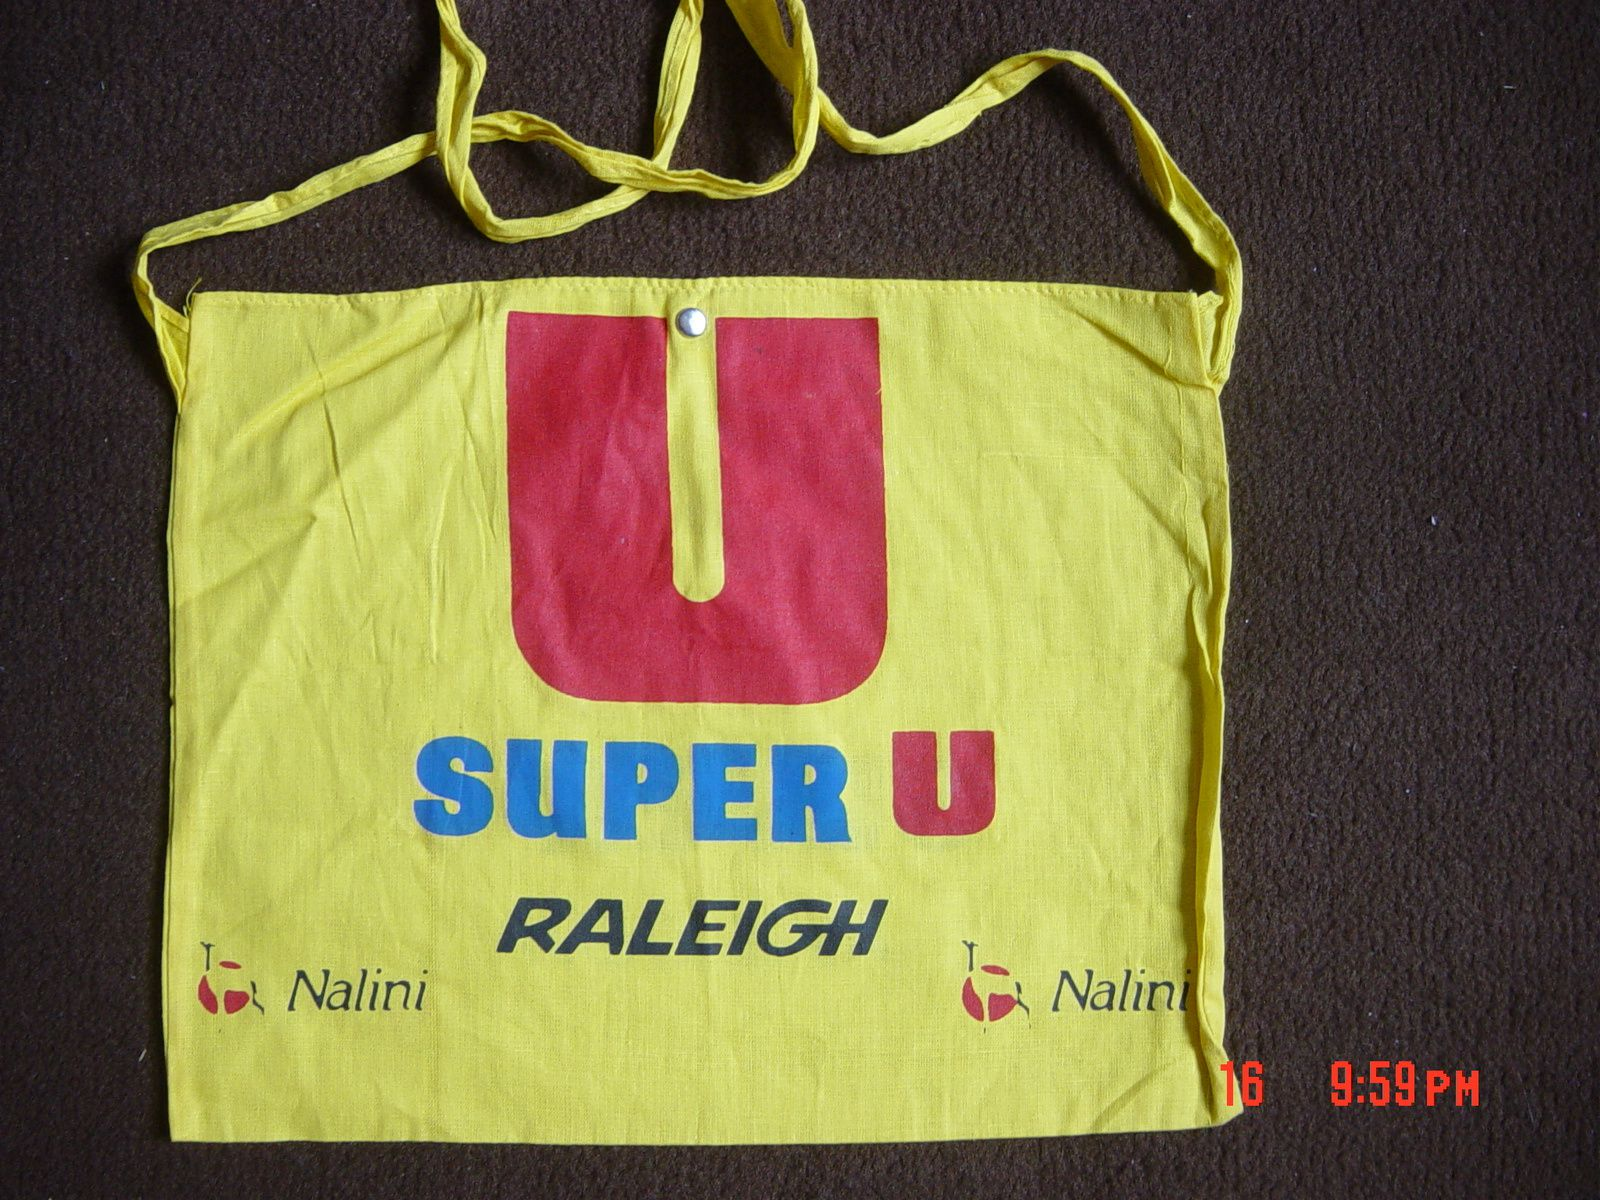 Super U cycles Raleigh 1989.